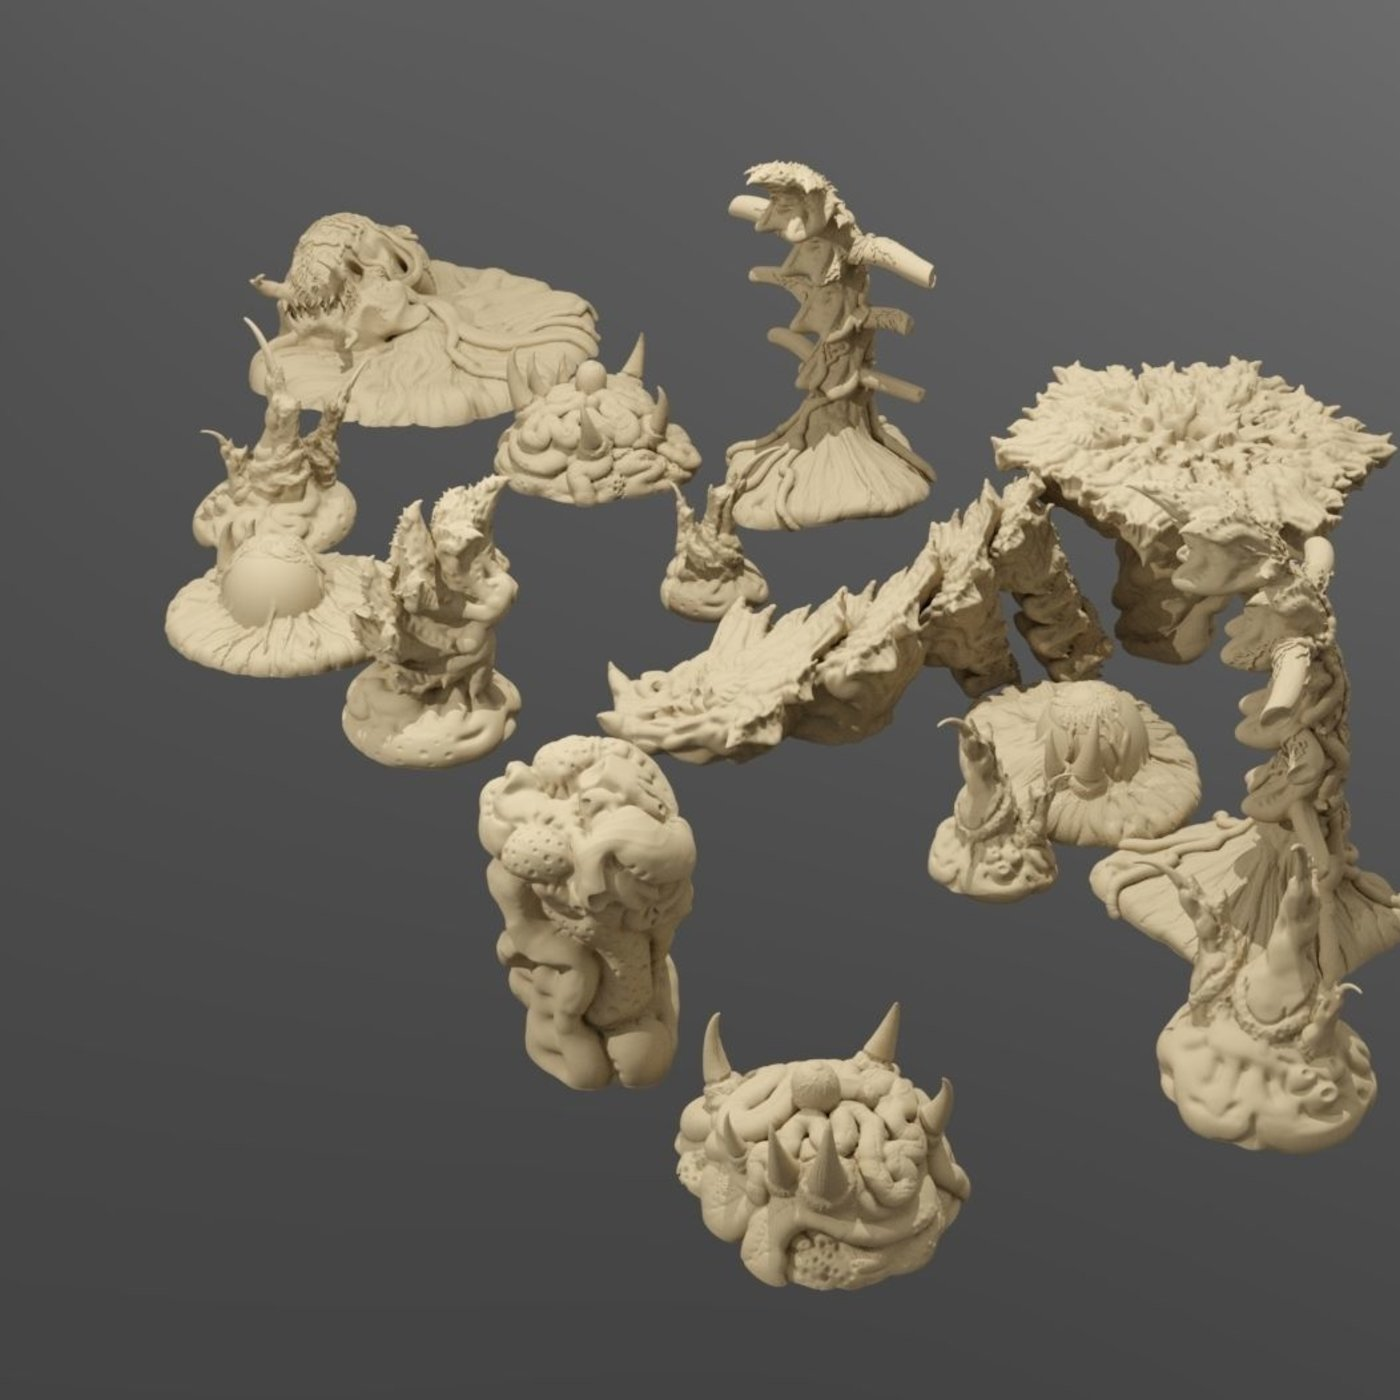 Tyranid Biomass Printable Scatter Terrain UPDATE